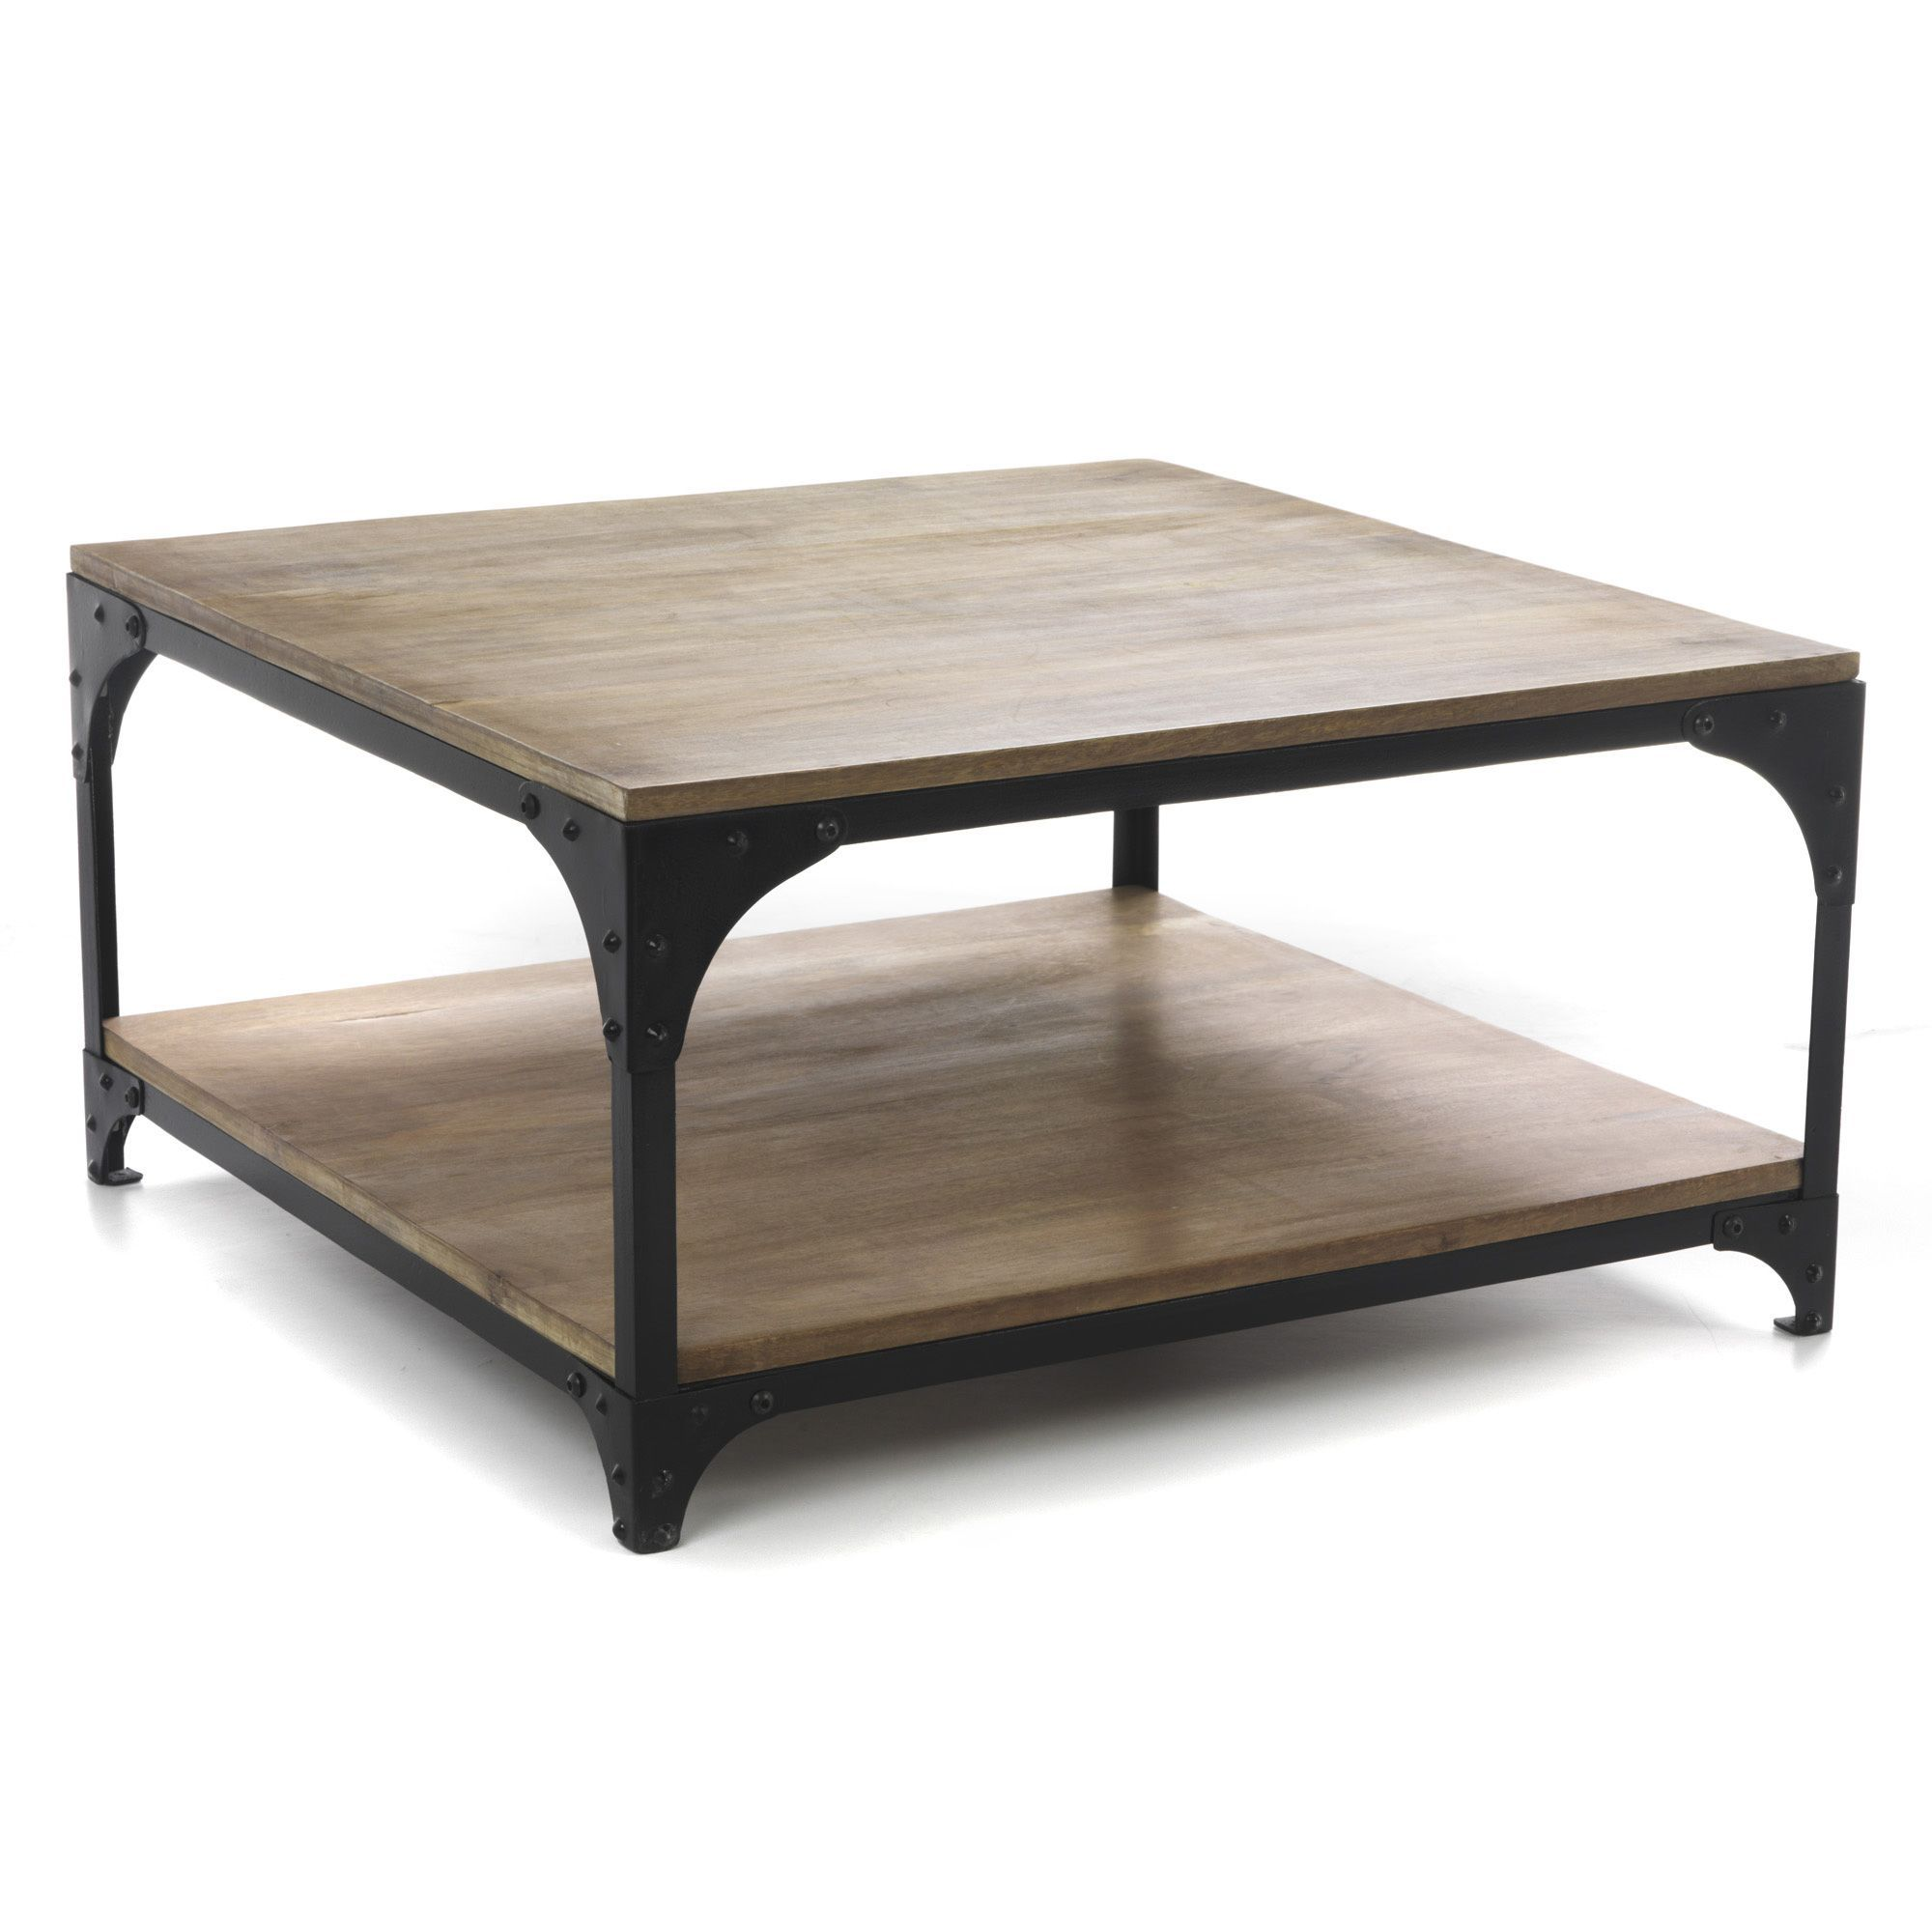 Table basse carr e industrielle naturel new ately les tables basses tab - Table basse opium carree ...